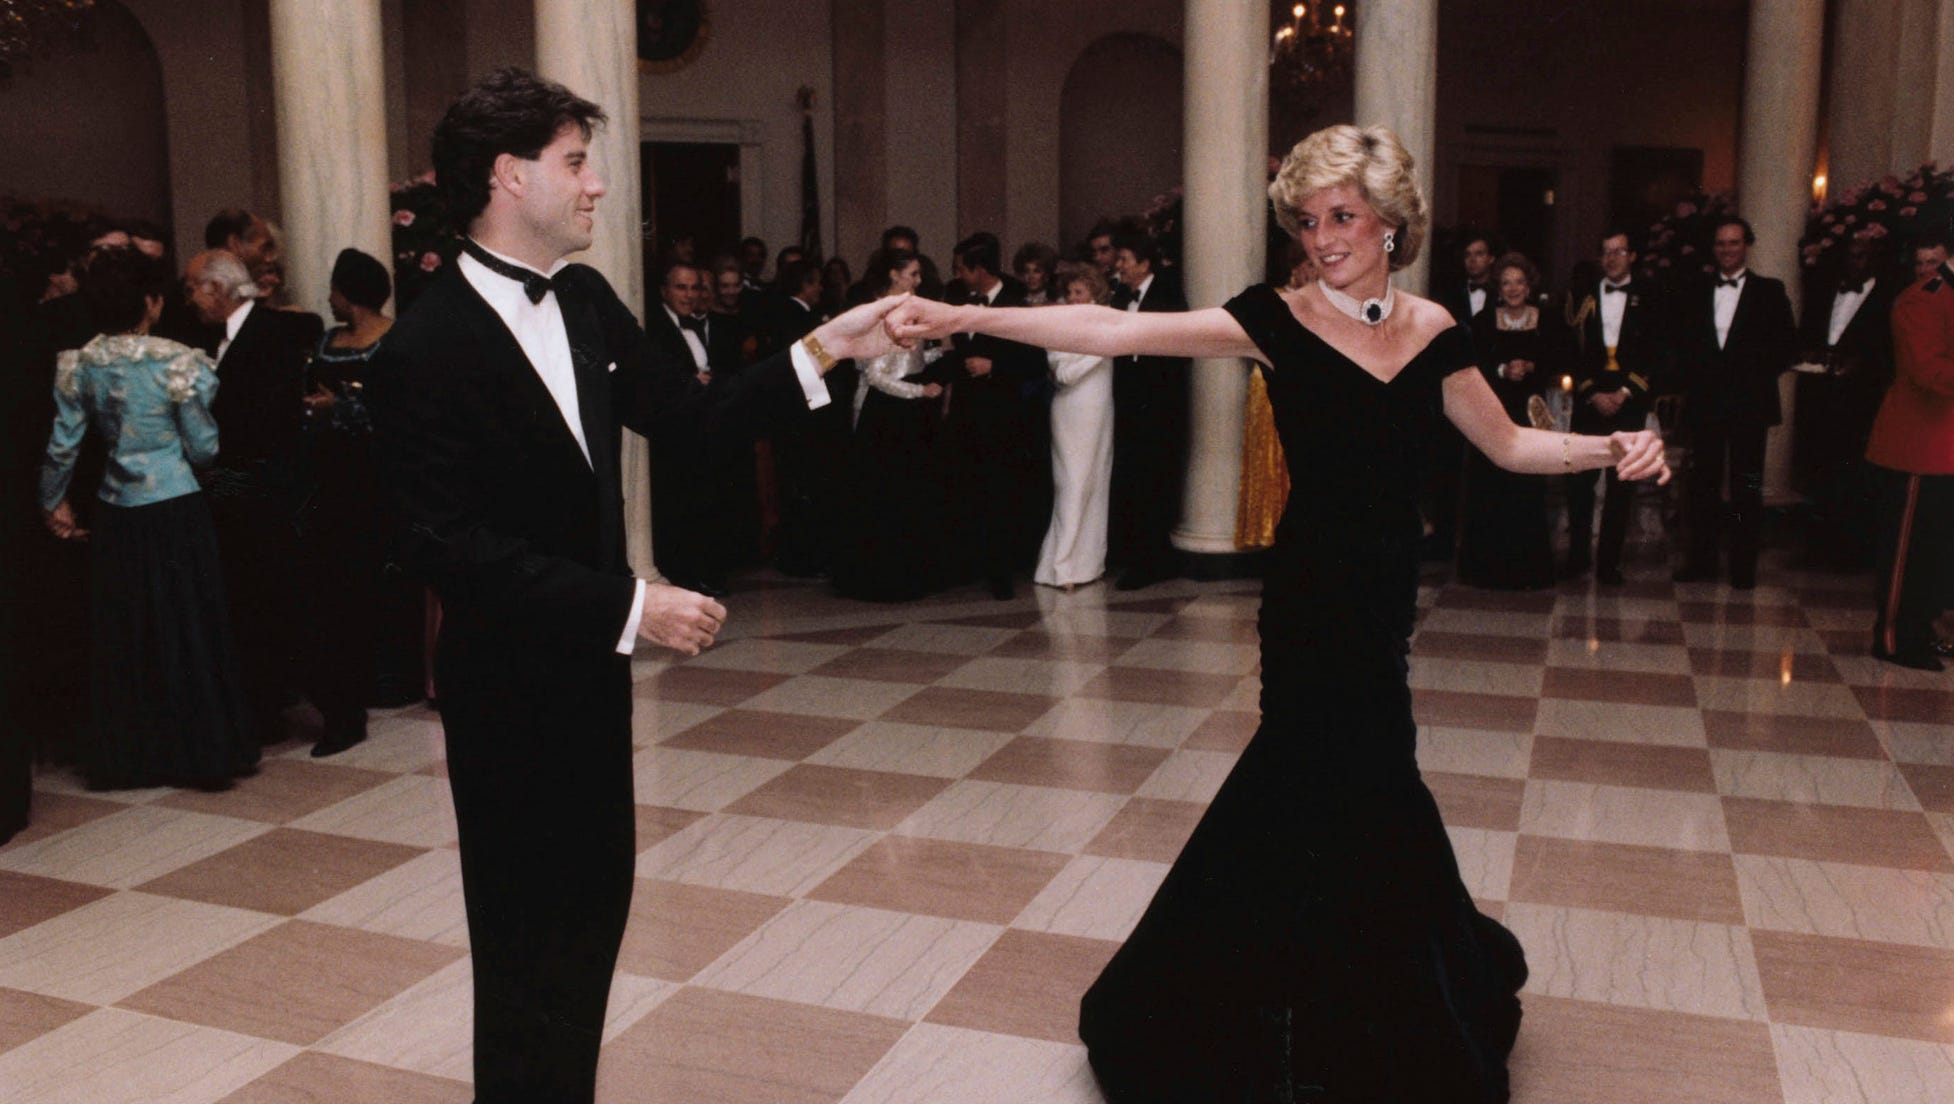 John Travolta is still talking about the 'magical' time he danced with Princess Diana